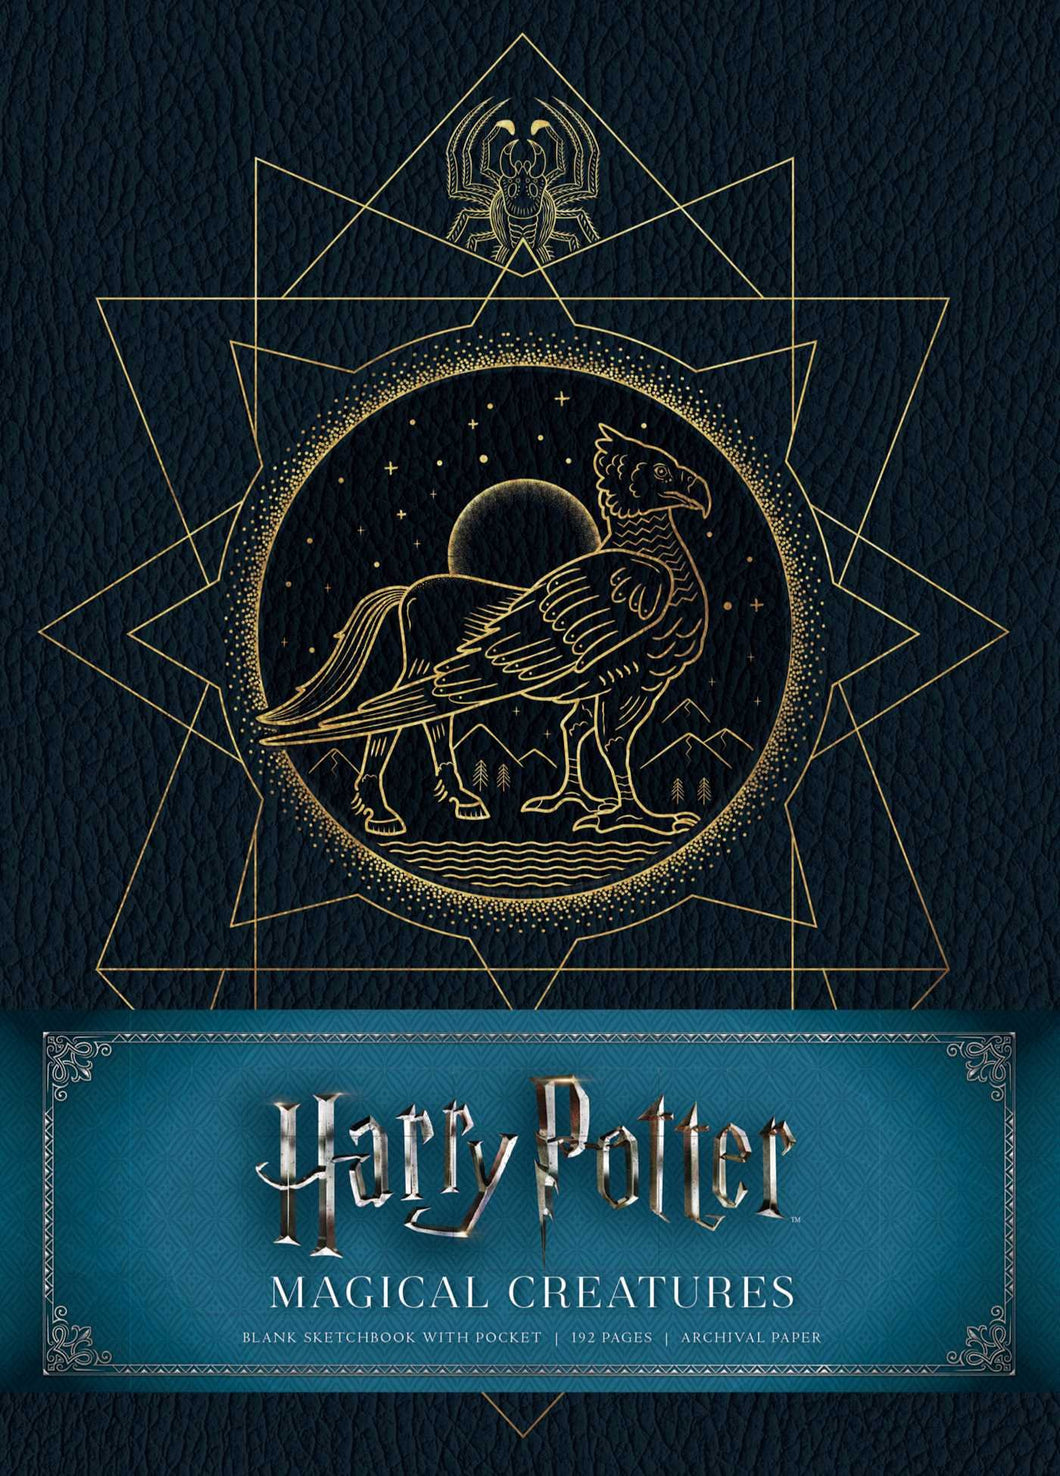 Harry Potter Magical Creatures Sketchbook